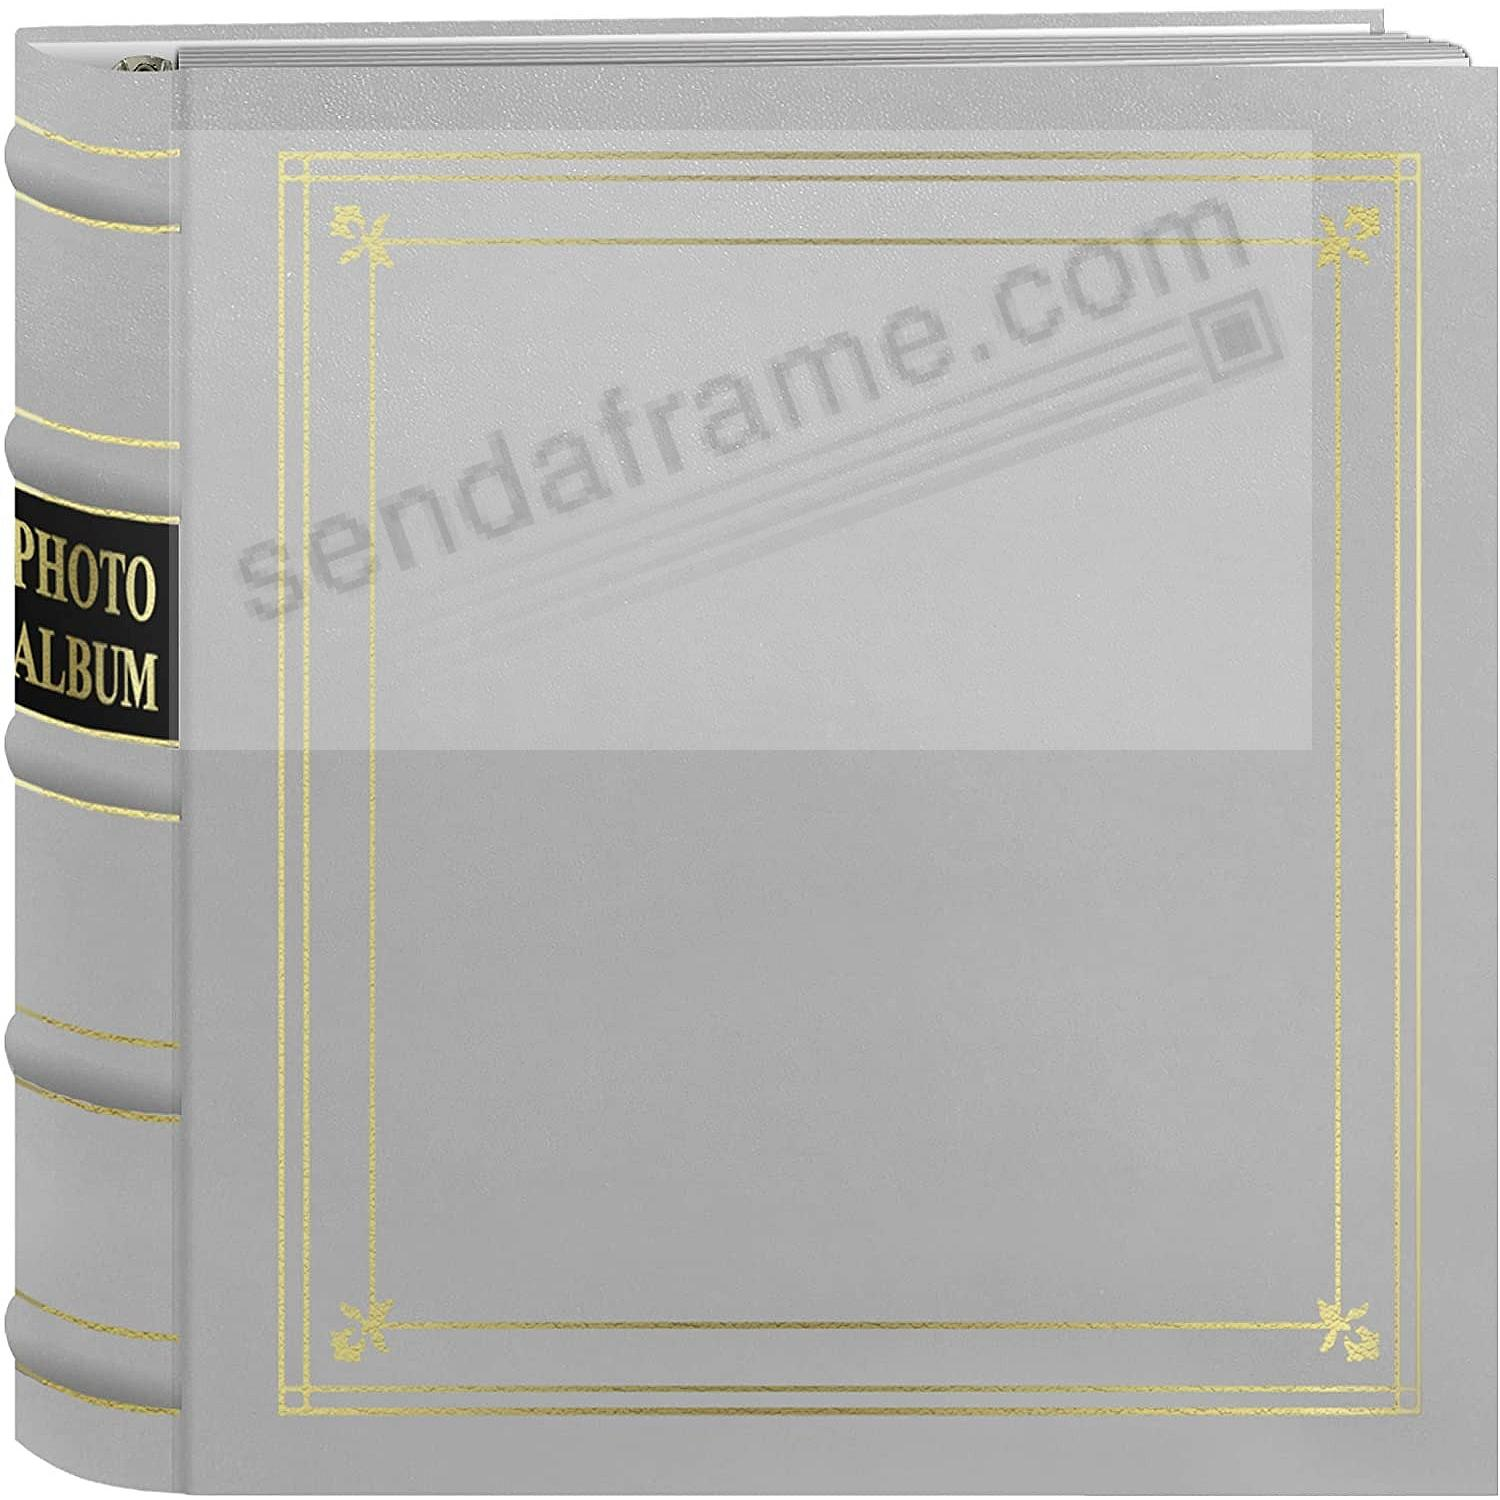 WHITE Leather 3-Ring BI-DIRECTIONAL 200 print capacity / 2up pocket album